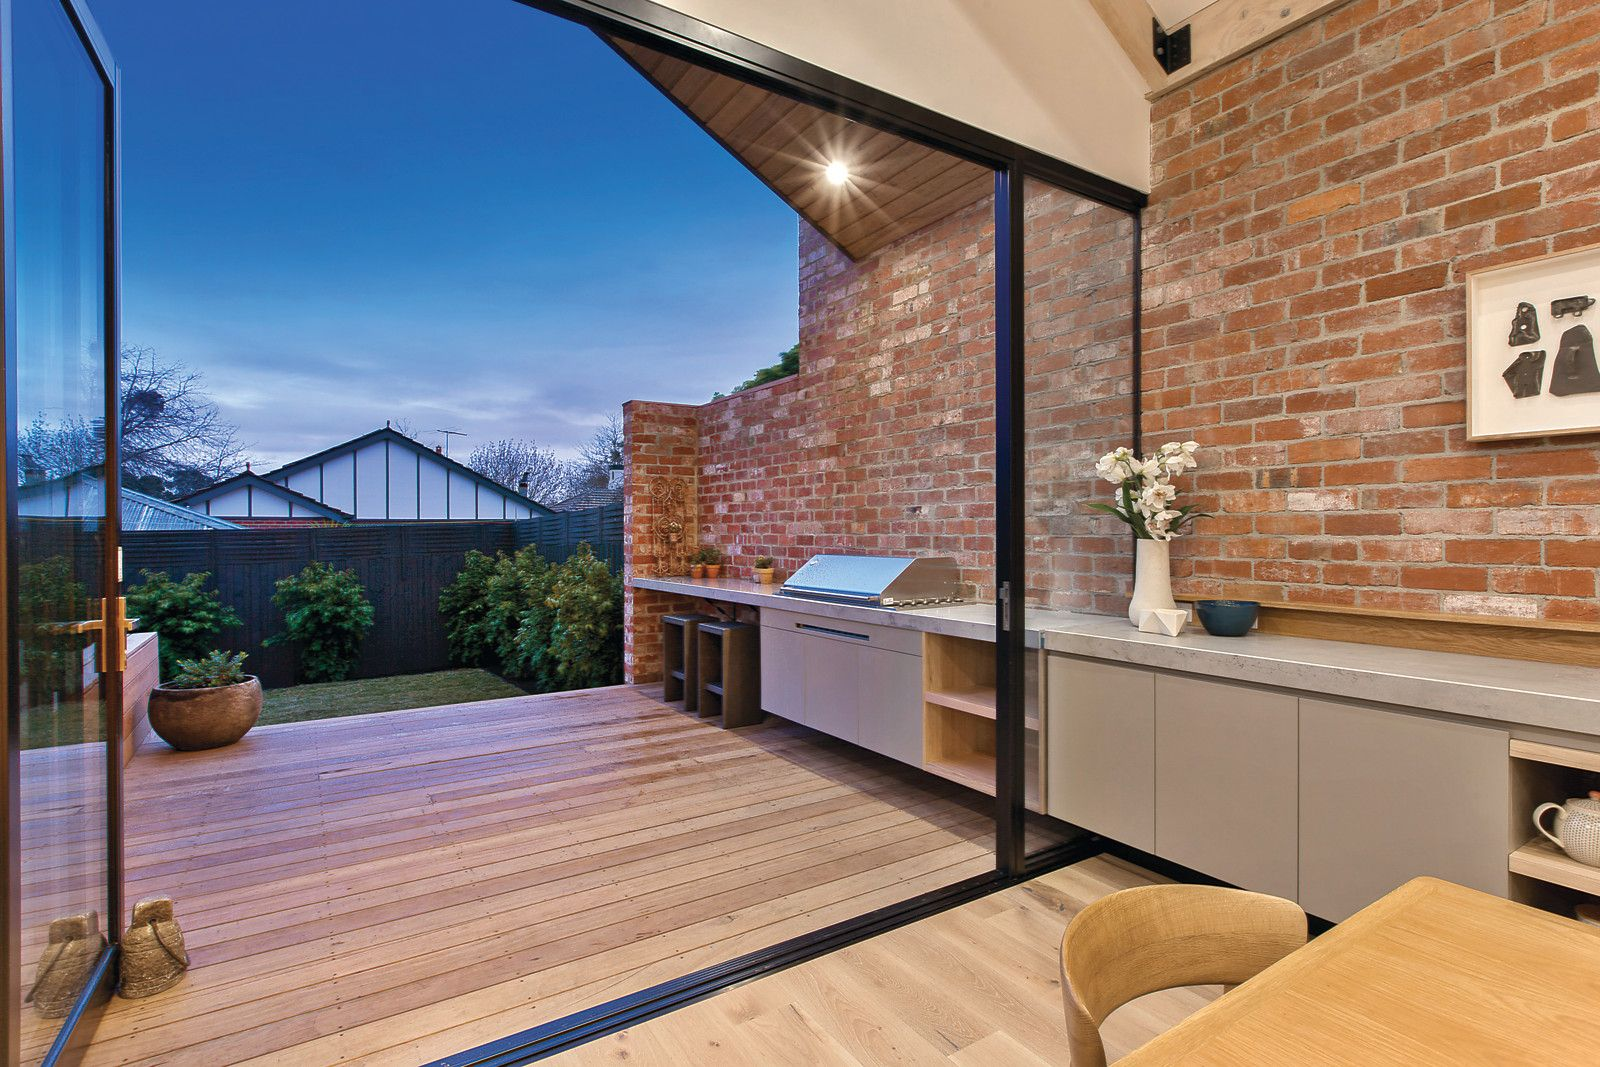 27 Findon Street, Malvern East VIC 3145 House For Sale